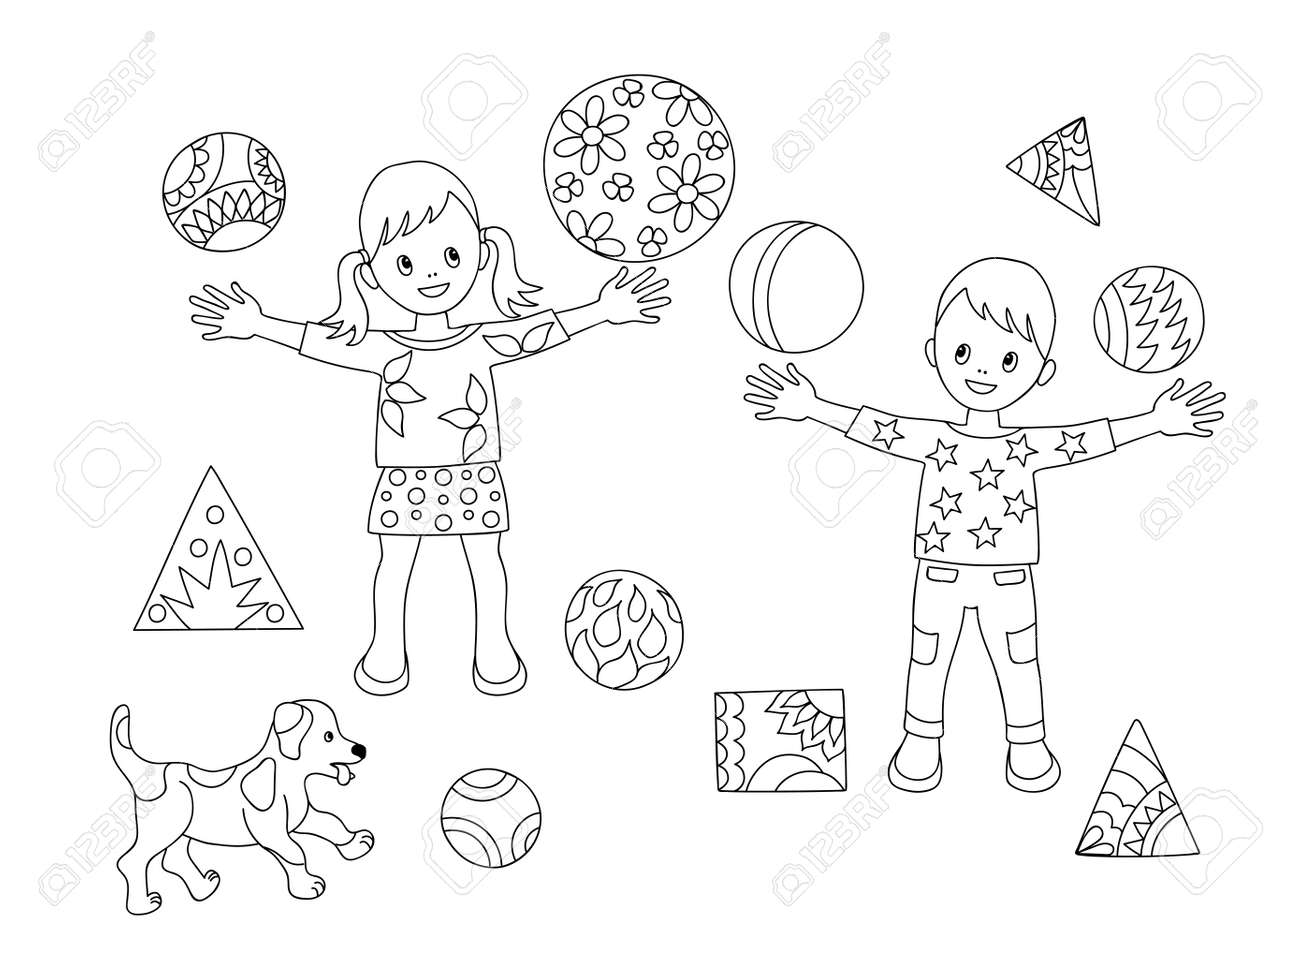 Coloring Page With Cartoon Playing Kids And Puppy Balls For Children Book Album